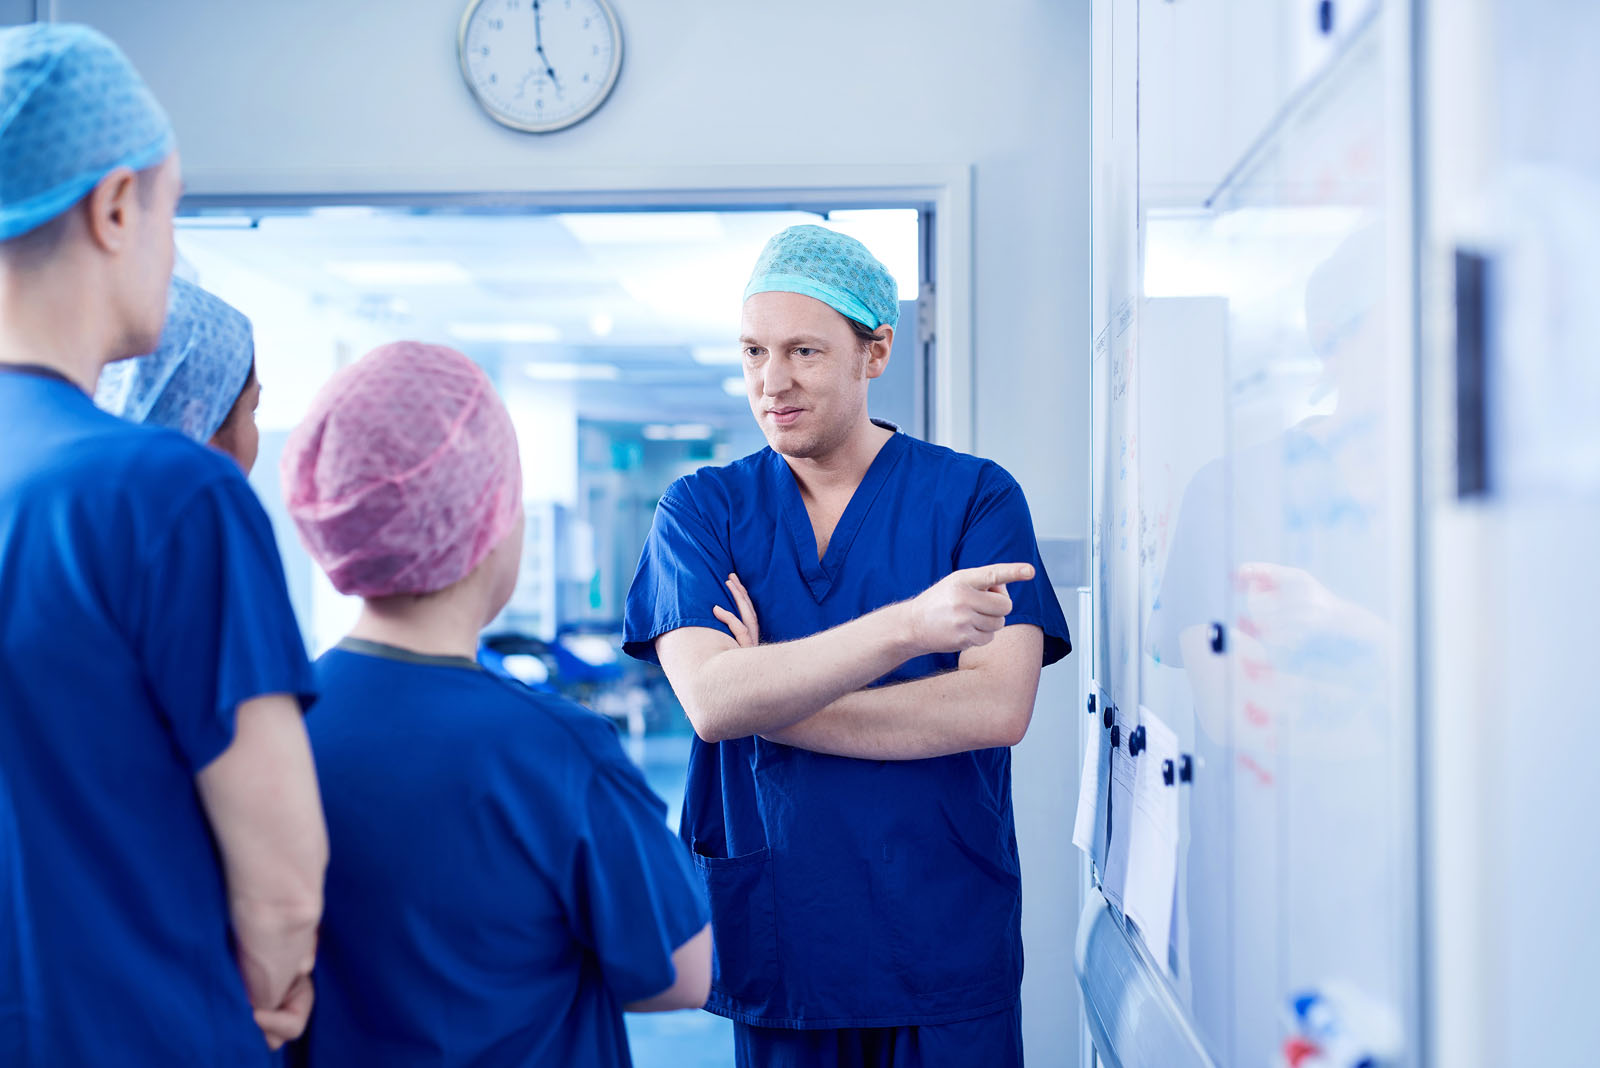 Surgery team briefing before an operation